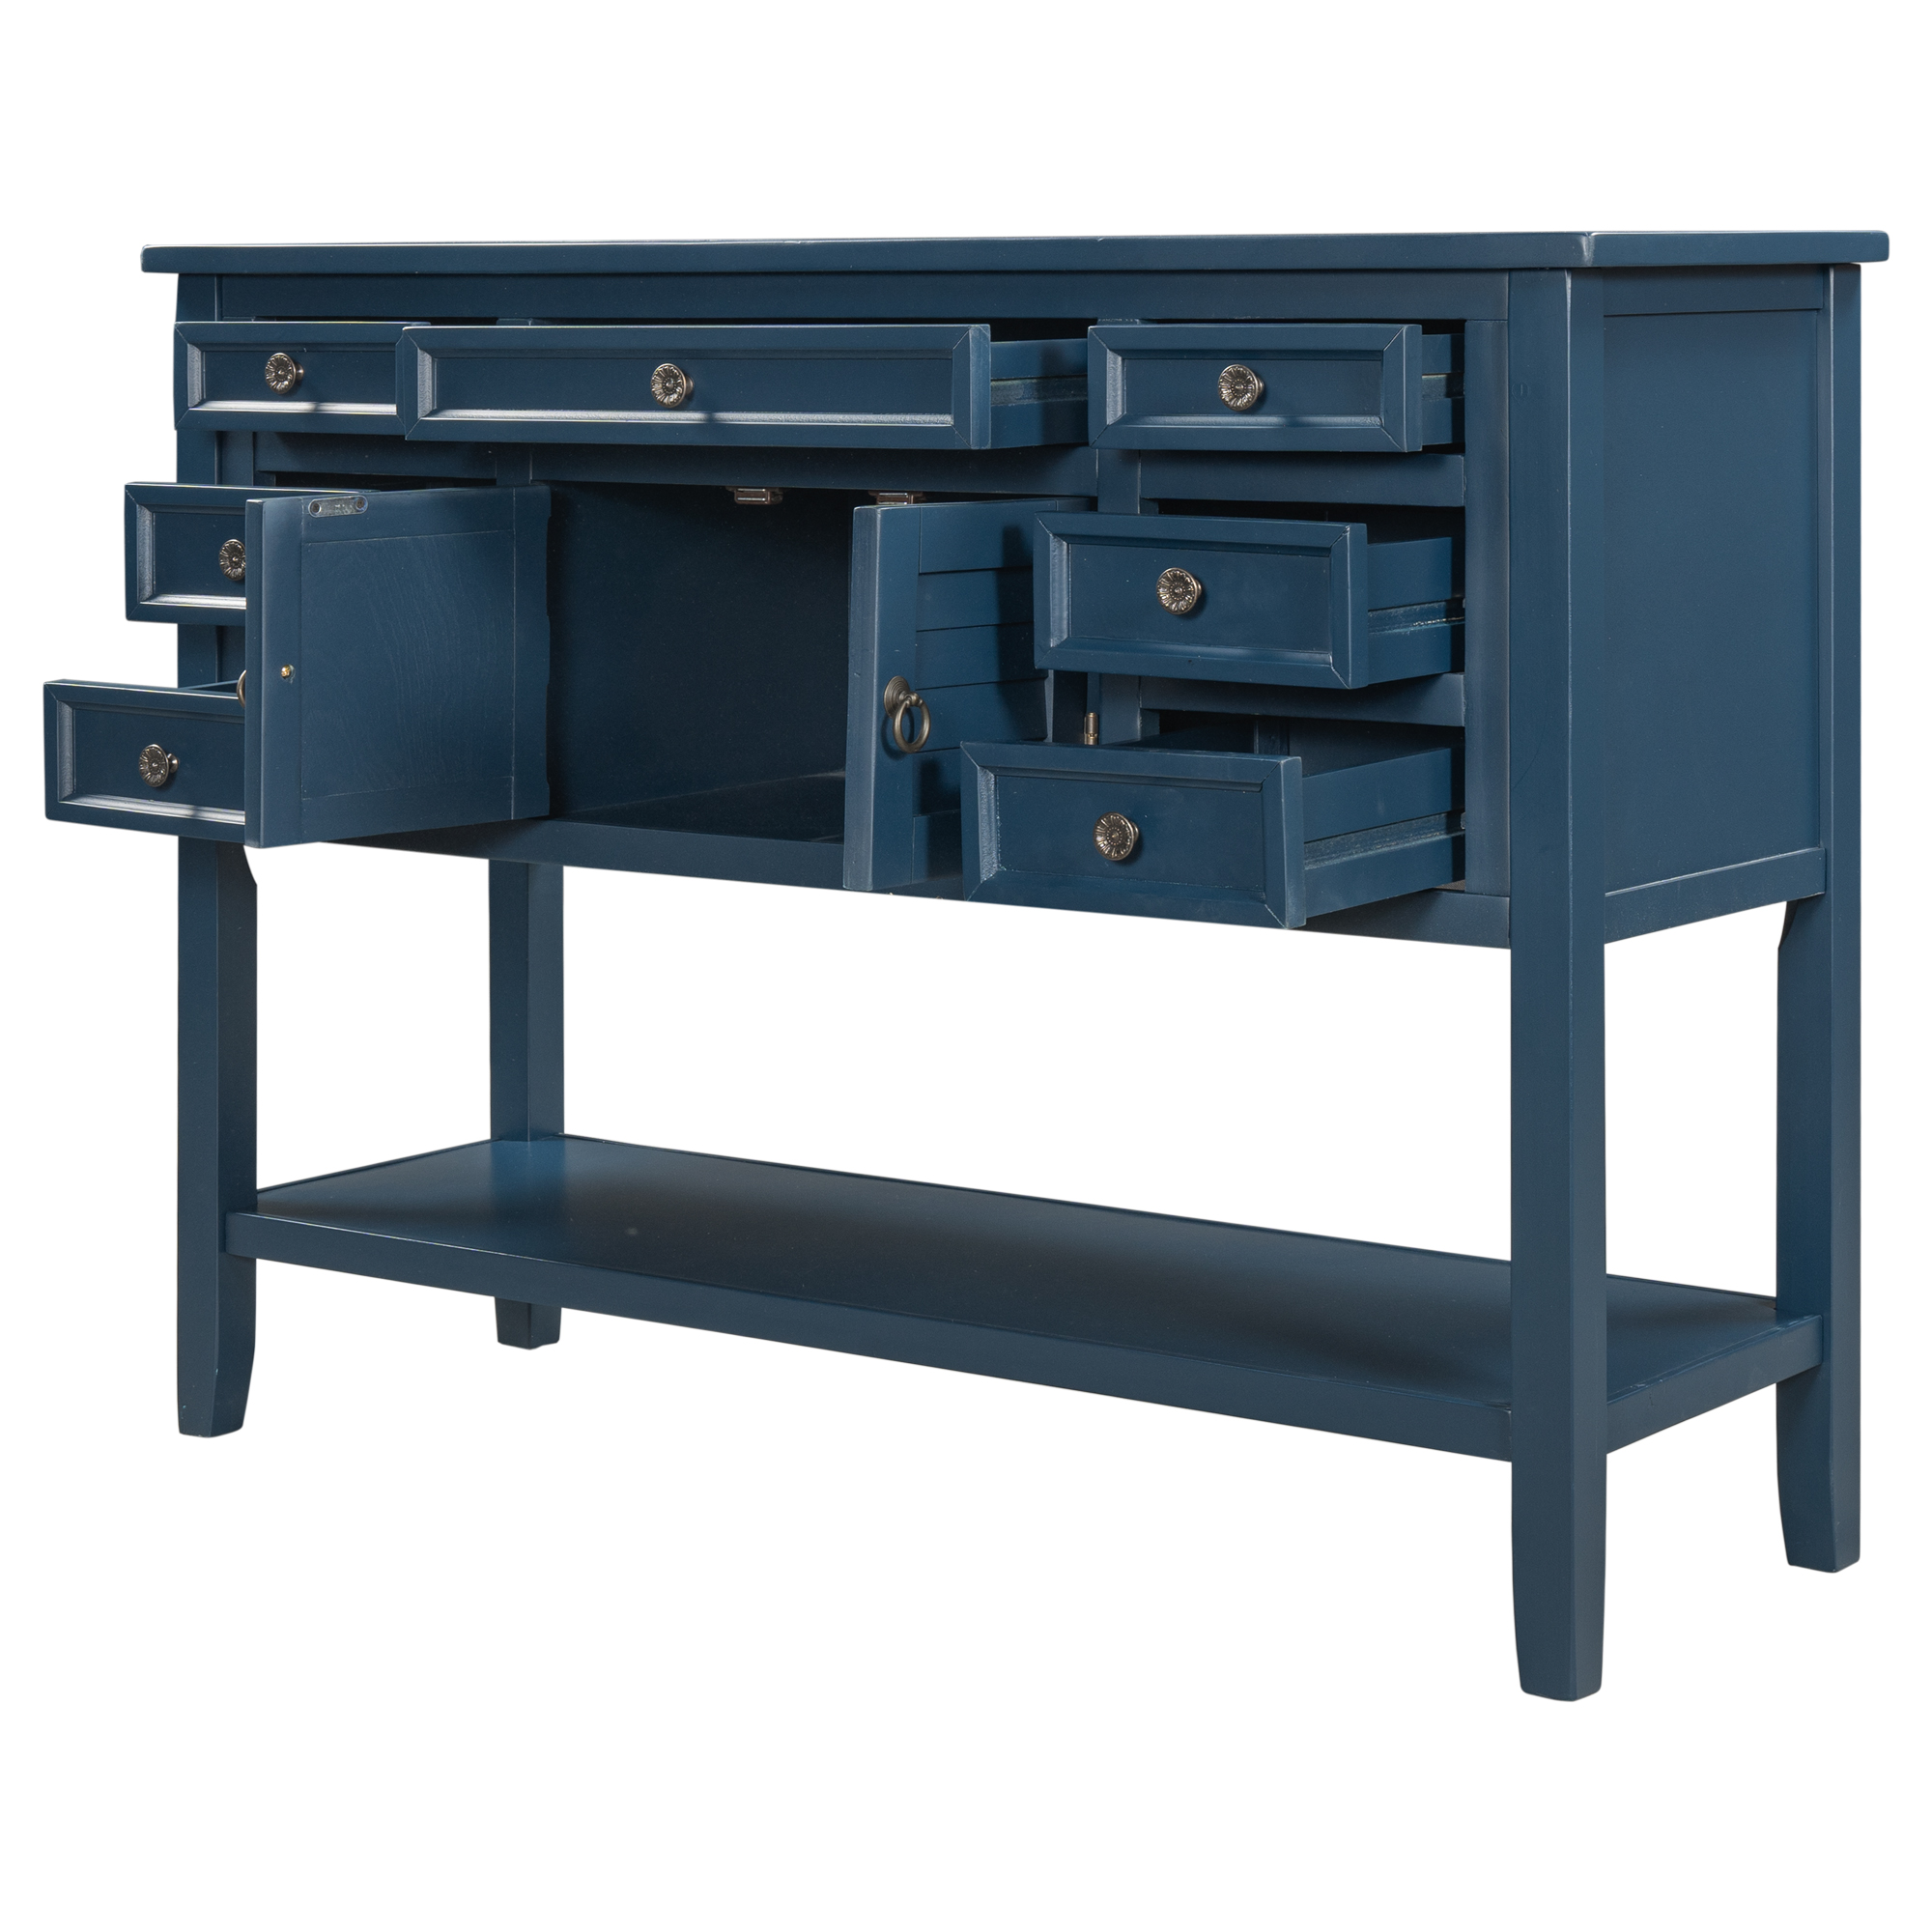 [US Direct] 45-inch Modern Console  Table Living Room Sofa Table With 7 Drawers+ 1 Cabinet +1 Shelf Blue